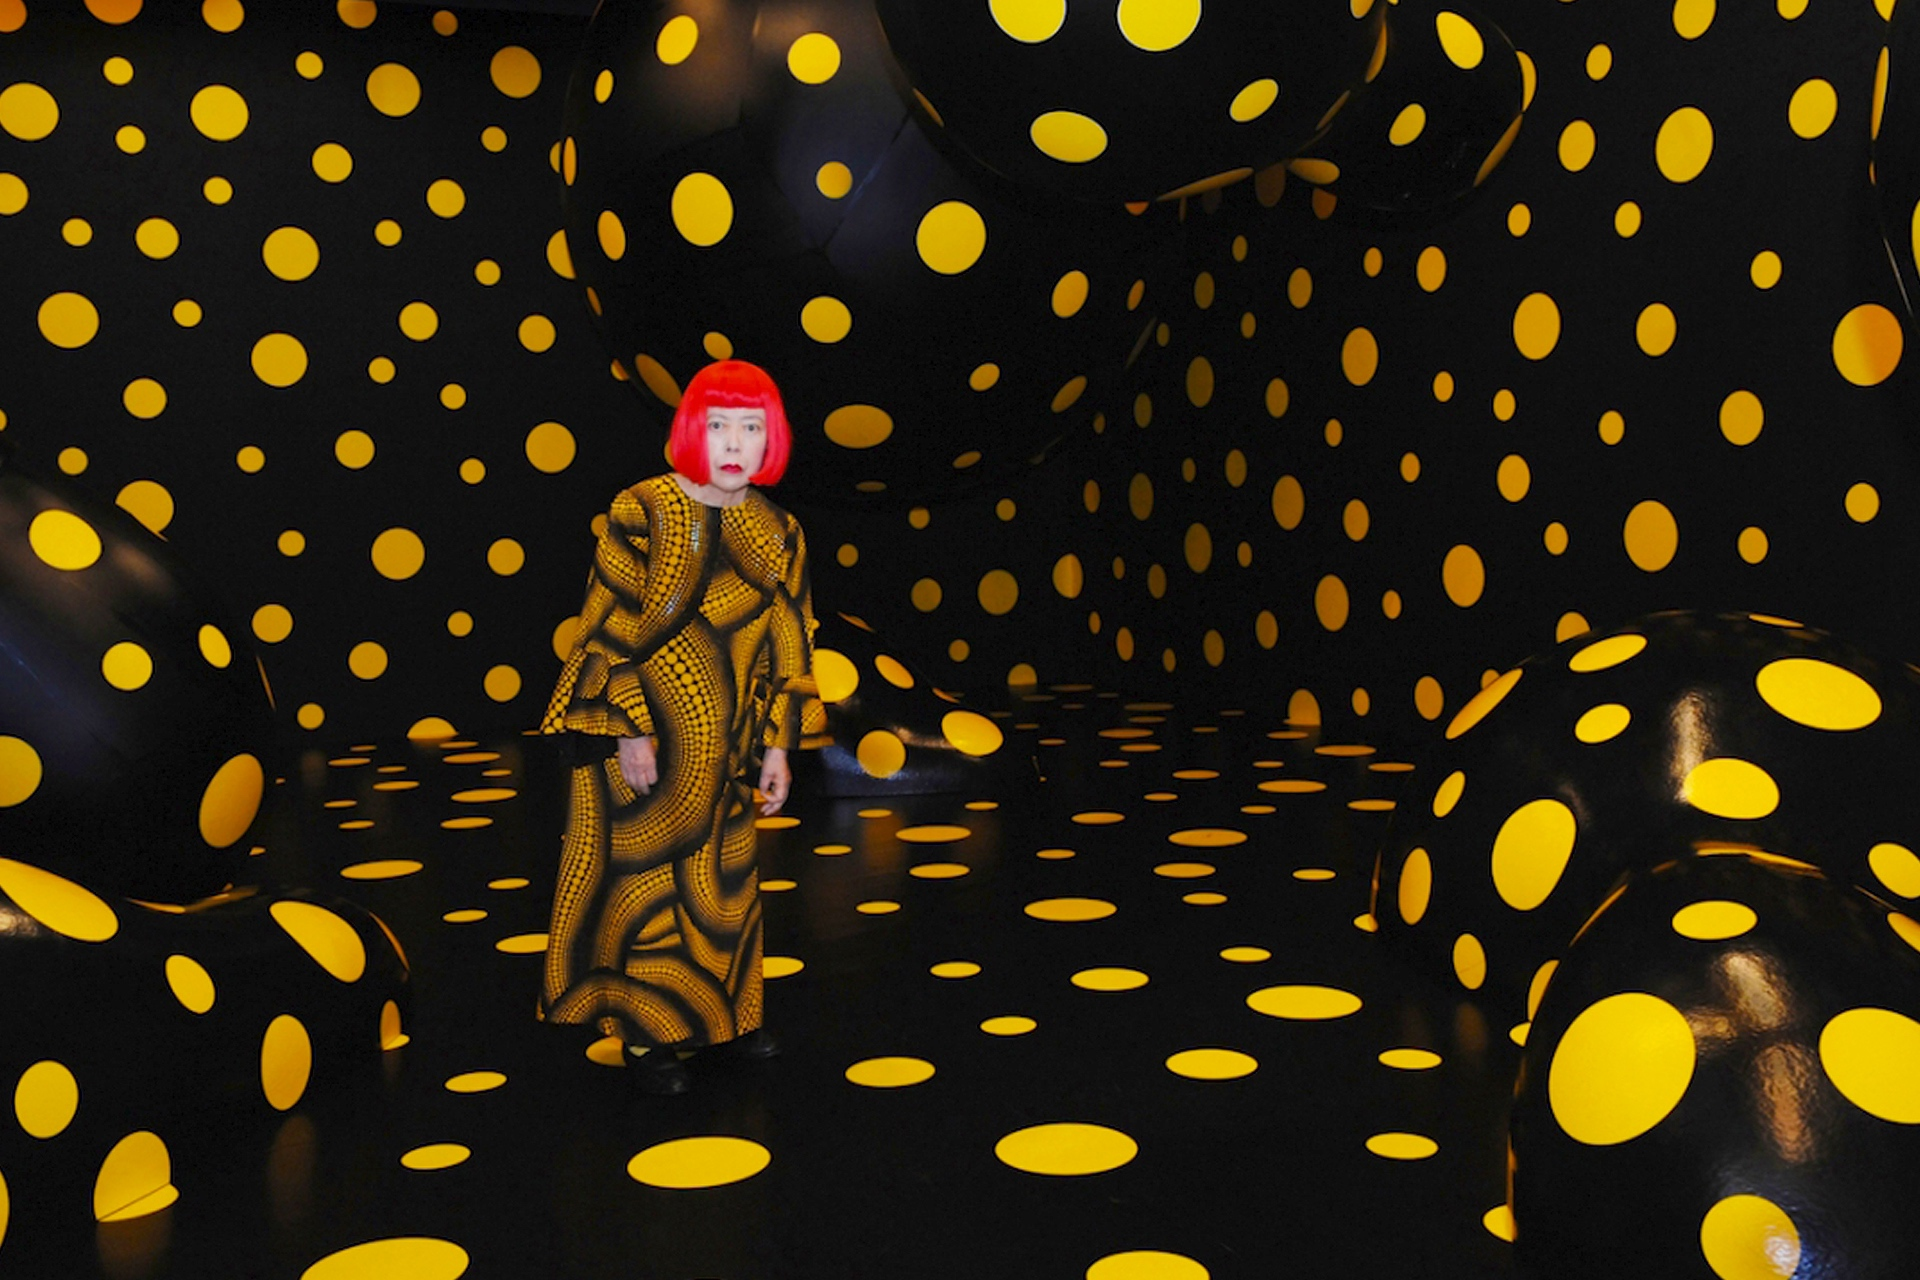 Dots Obsession Night (2008) by Yayoi Kusama - Pako Campo